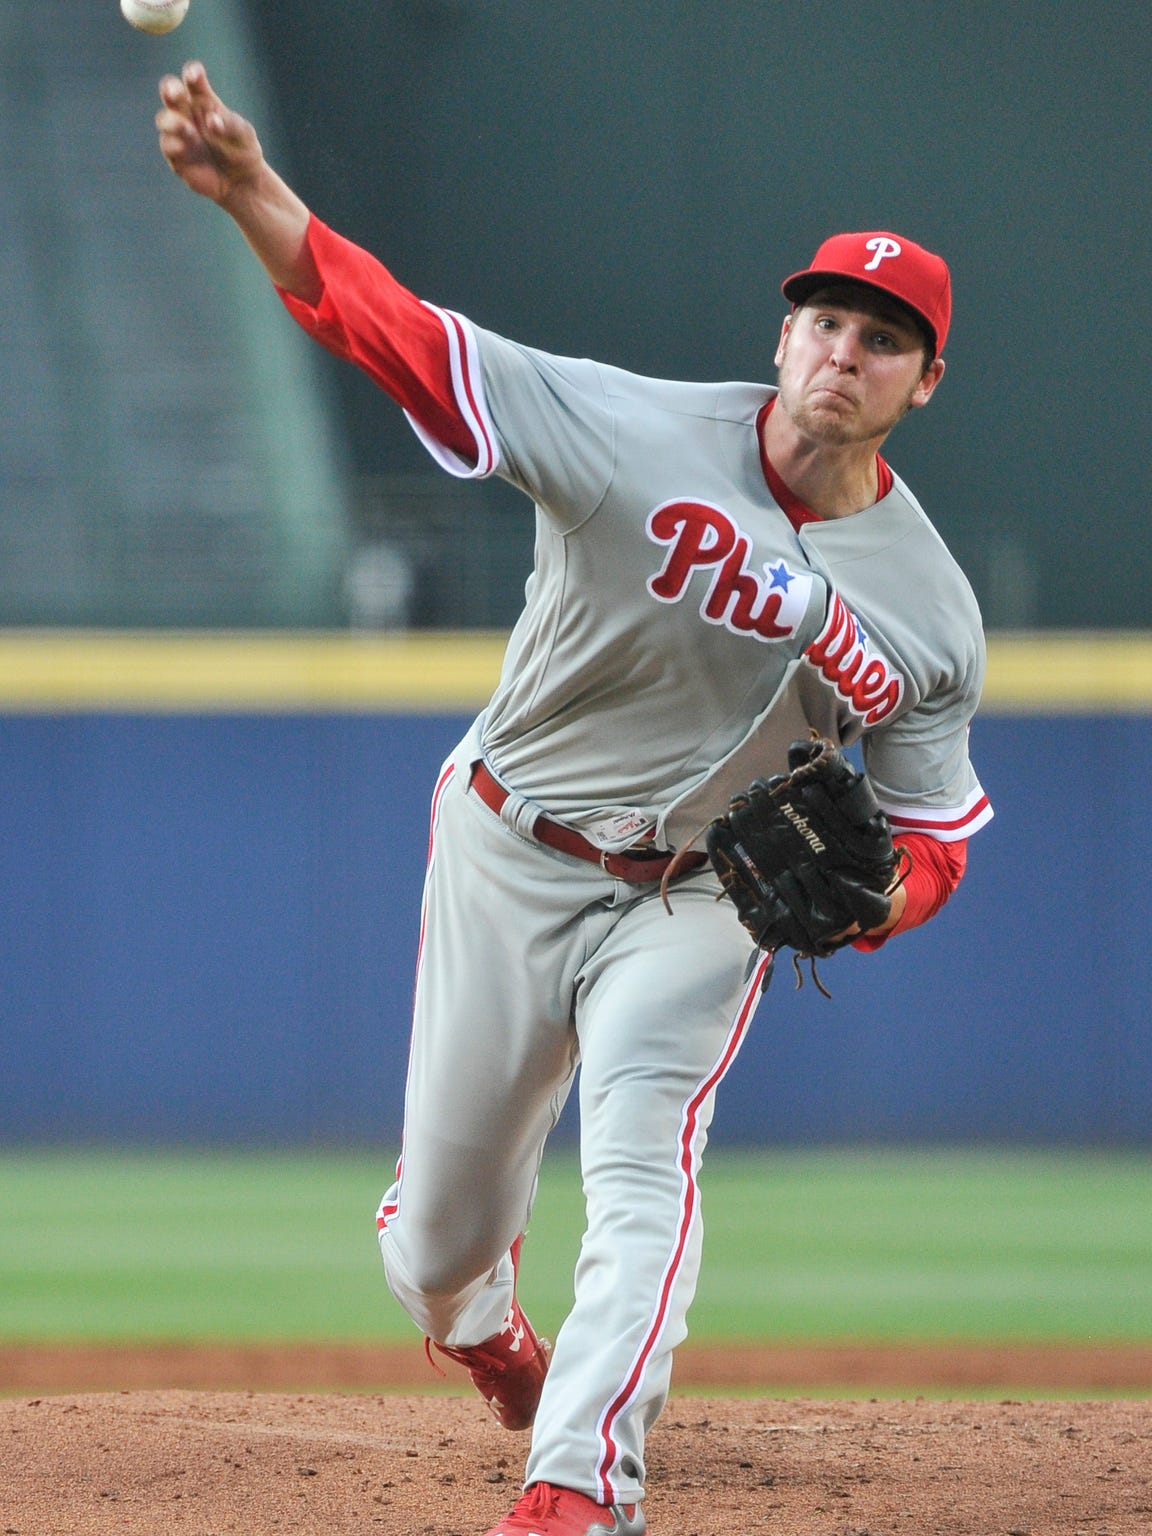 Philadelphia Phillies' Jerad Eickhoff pitches against the Atlanta Braves during the first inning Wednesday. Eickhoff struggled, lasted only 4 1/3 innings.